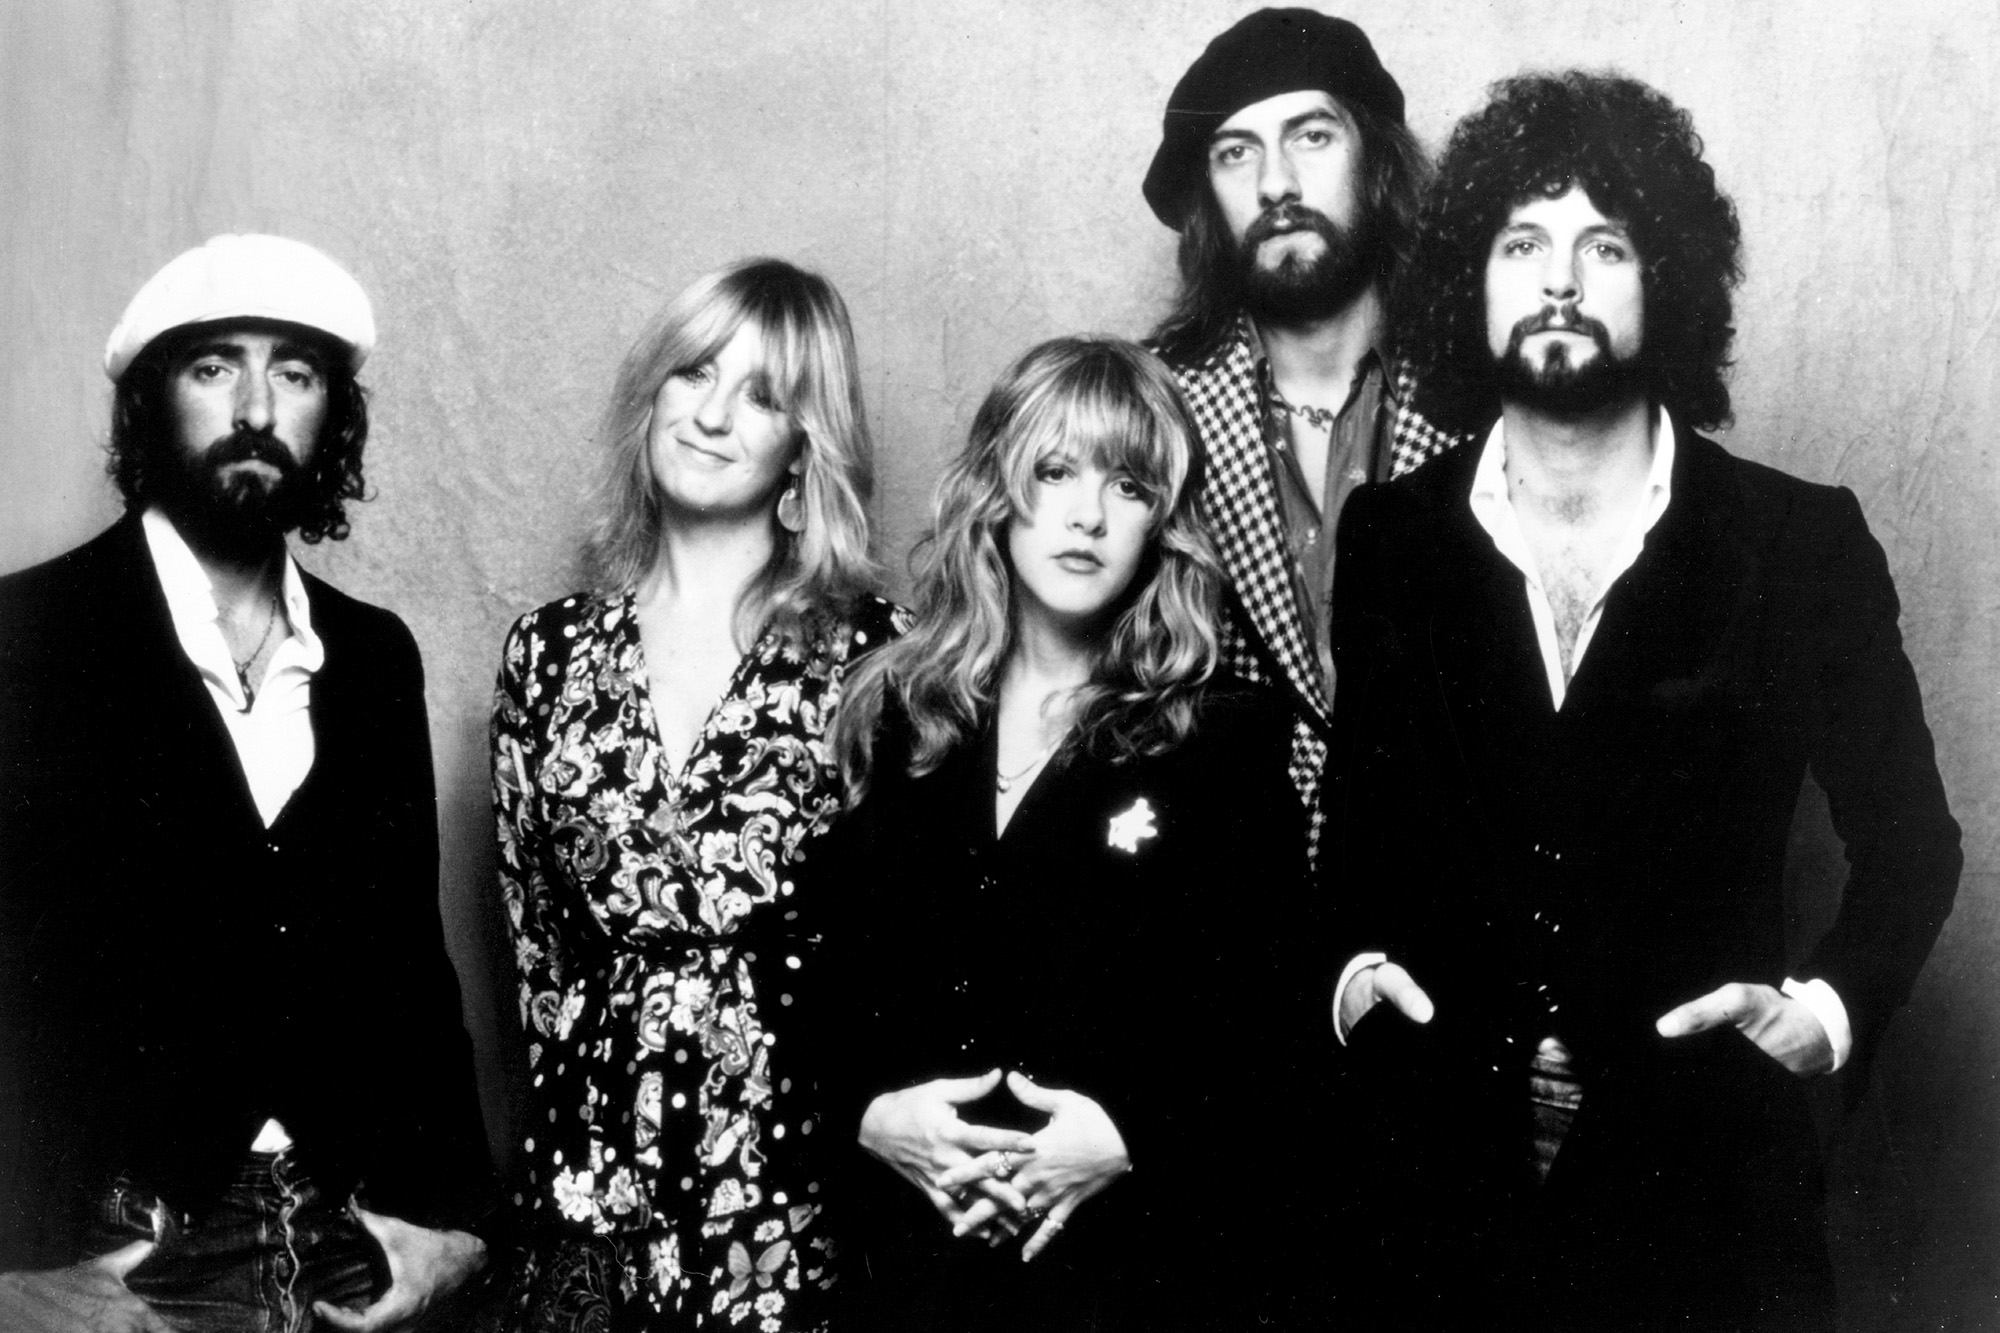 TikTok video puts Fleetwood Mac's 'Dreams' back on charts